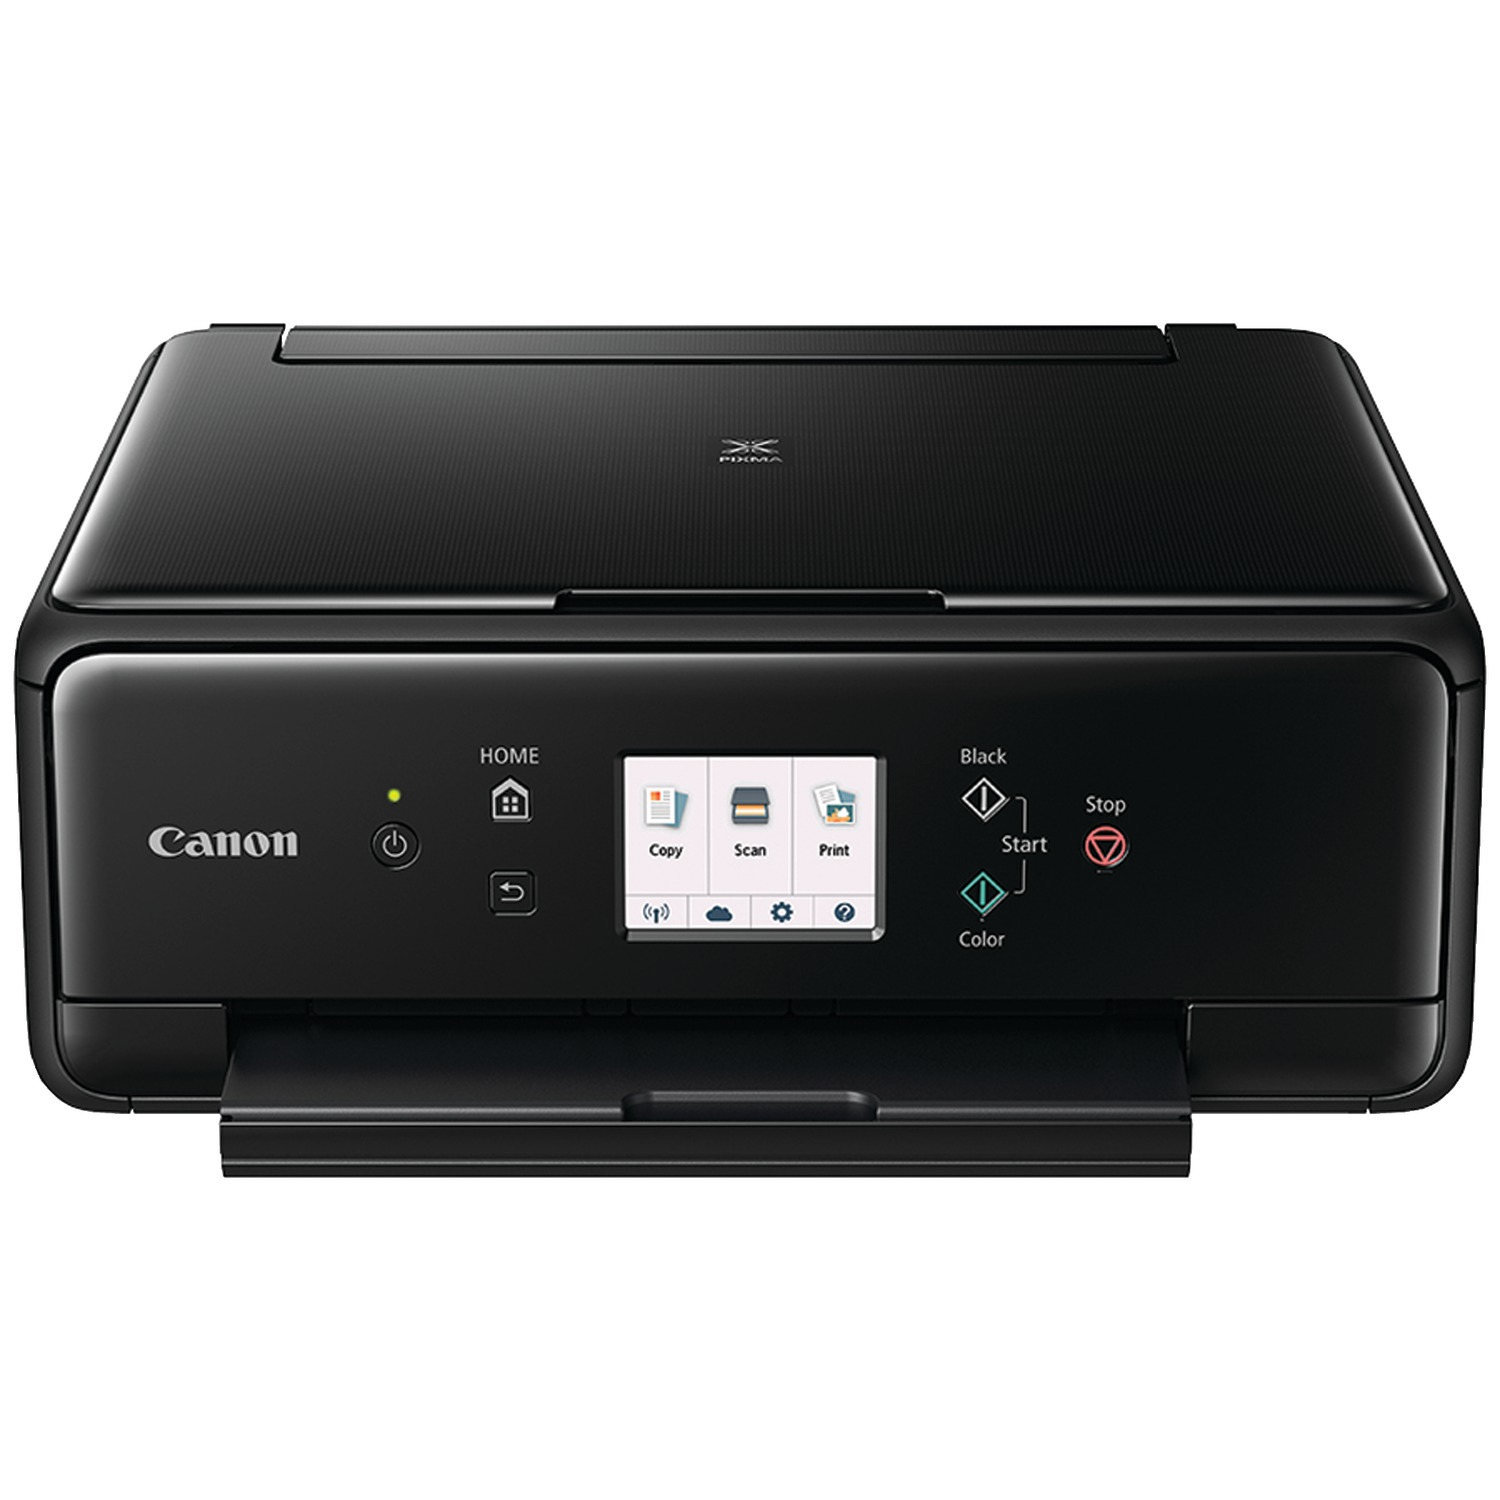 Canon 1368C002 PIXMA TS6020 All-in-One Wireless Printer (Black)